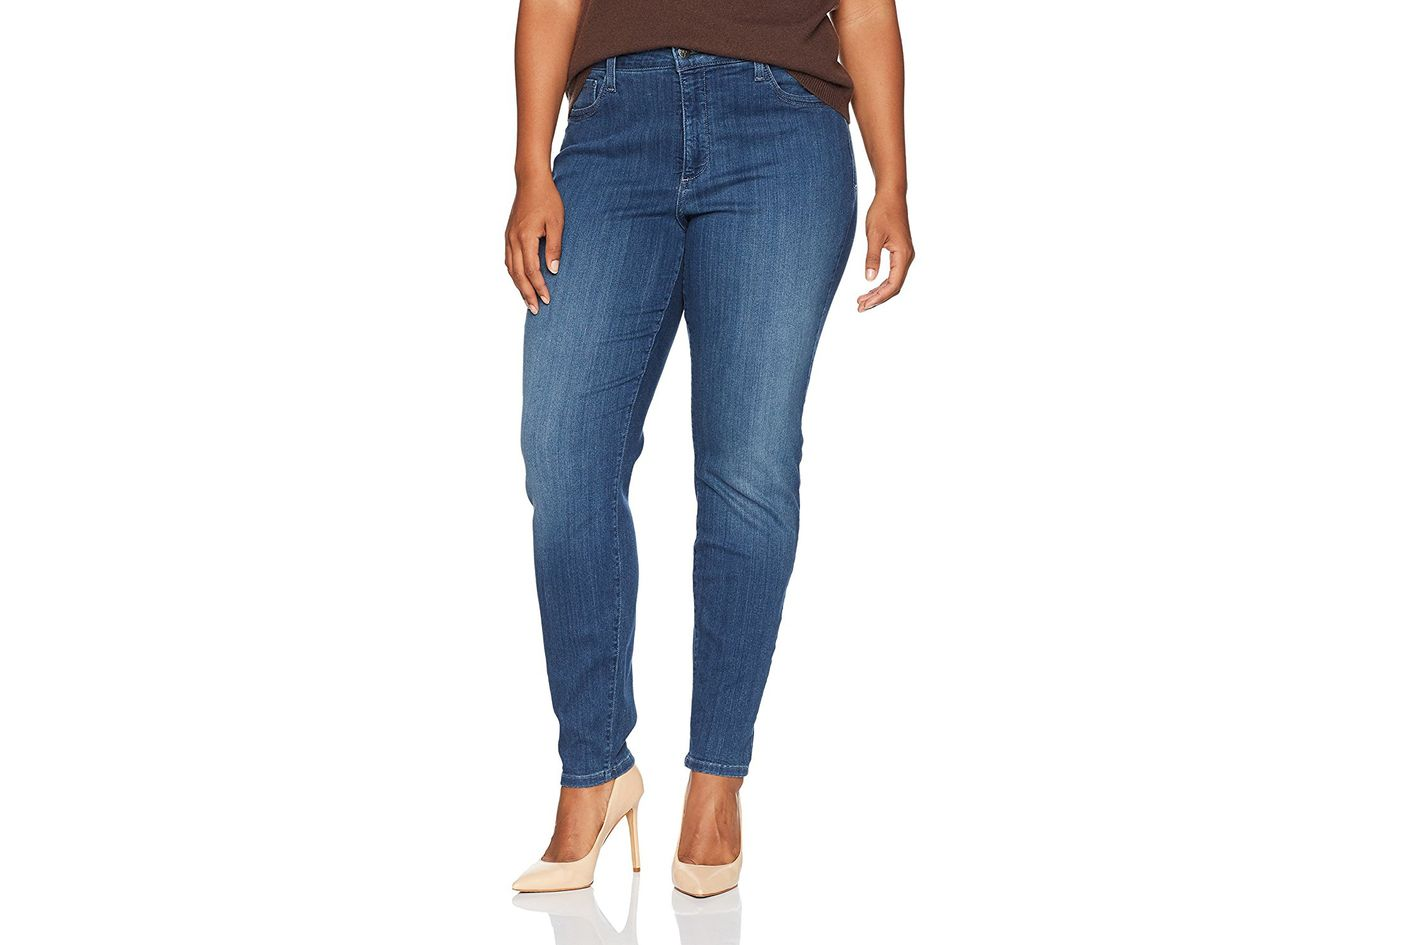 cf880fc06bbd9 10 Best Plus-Size Jeans According to Real Women 2018